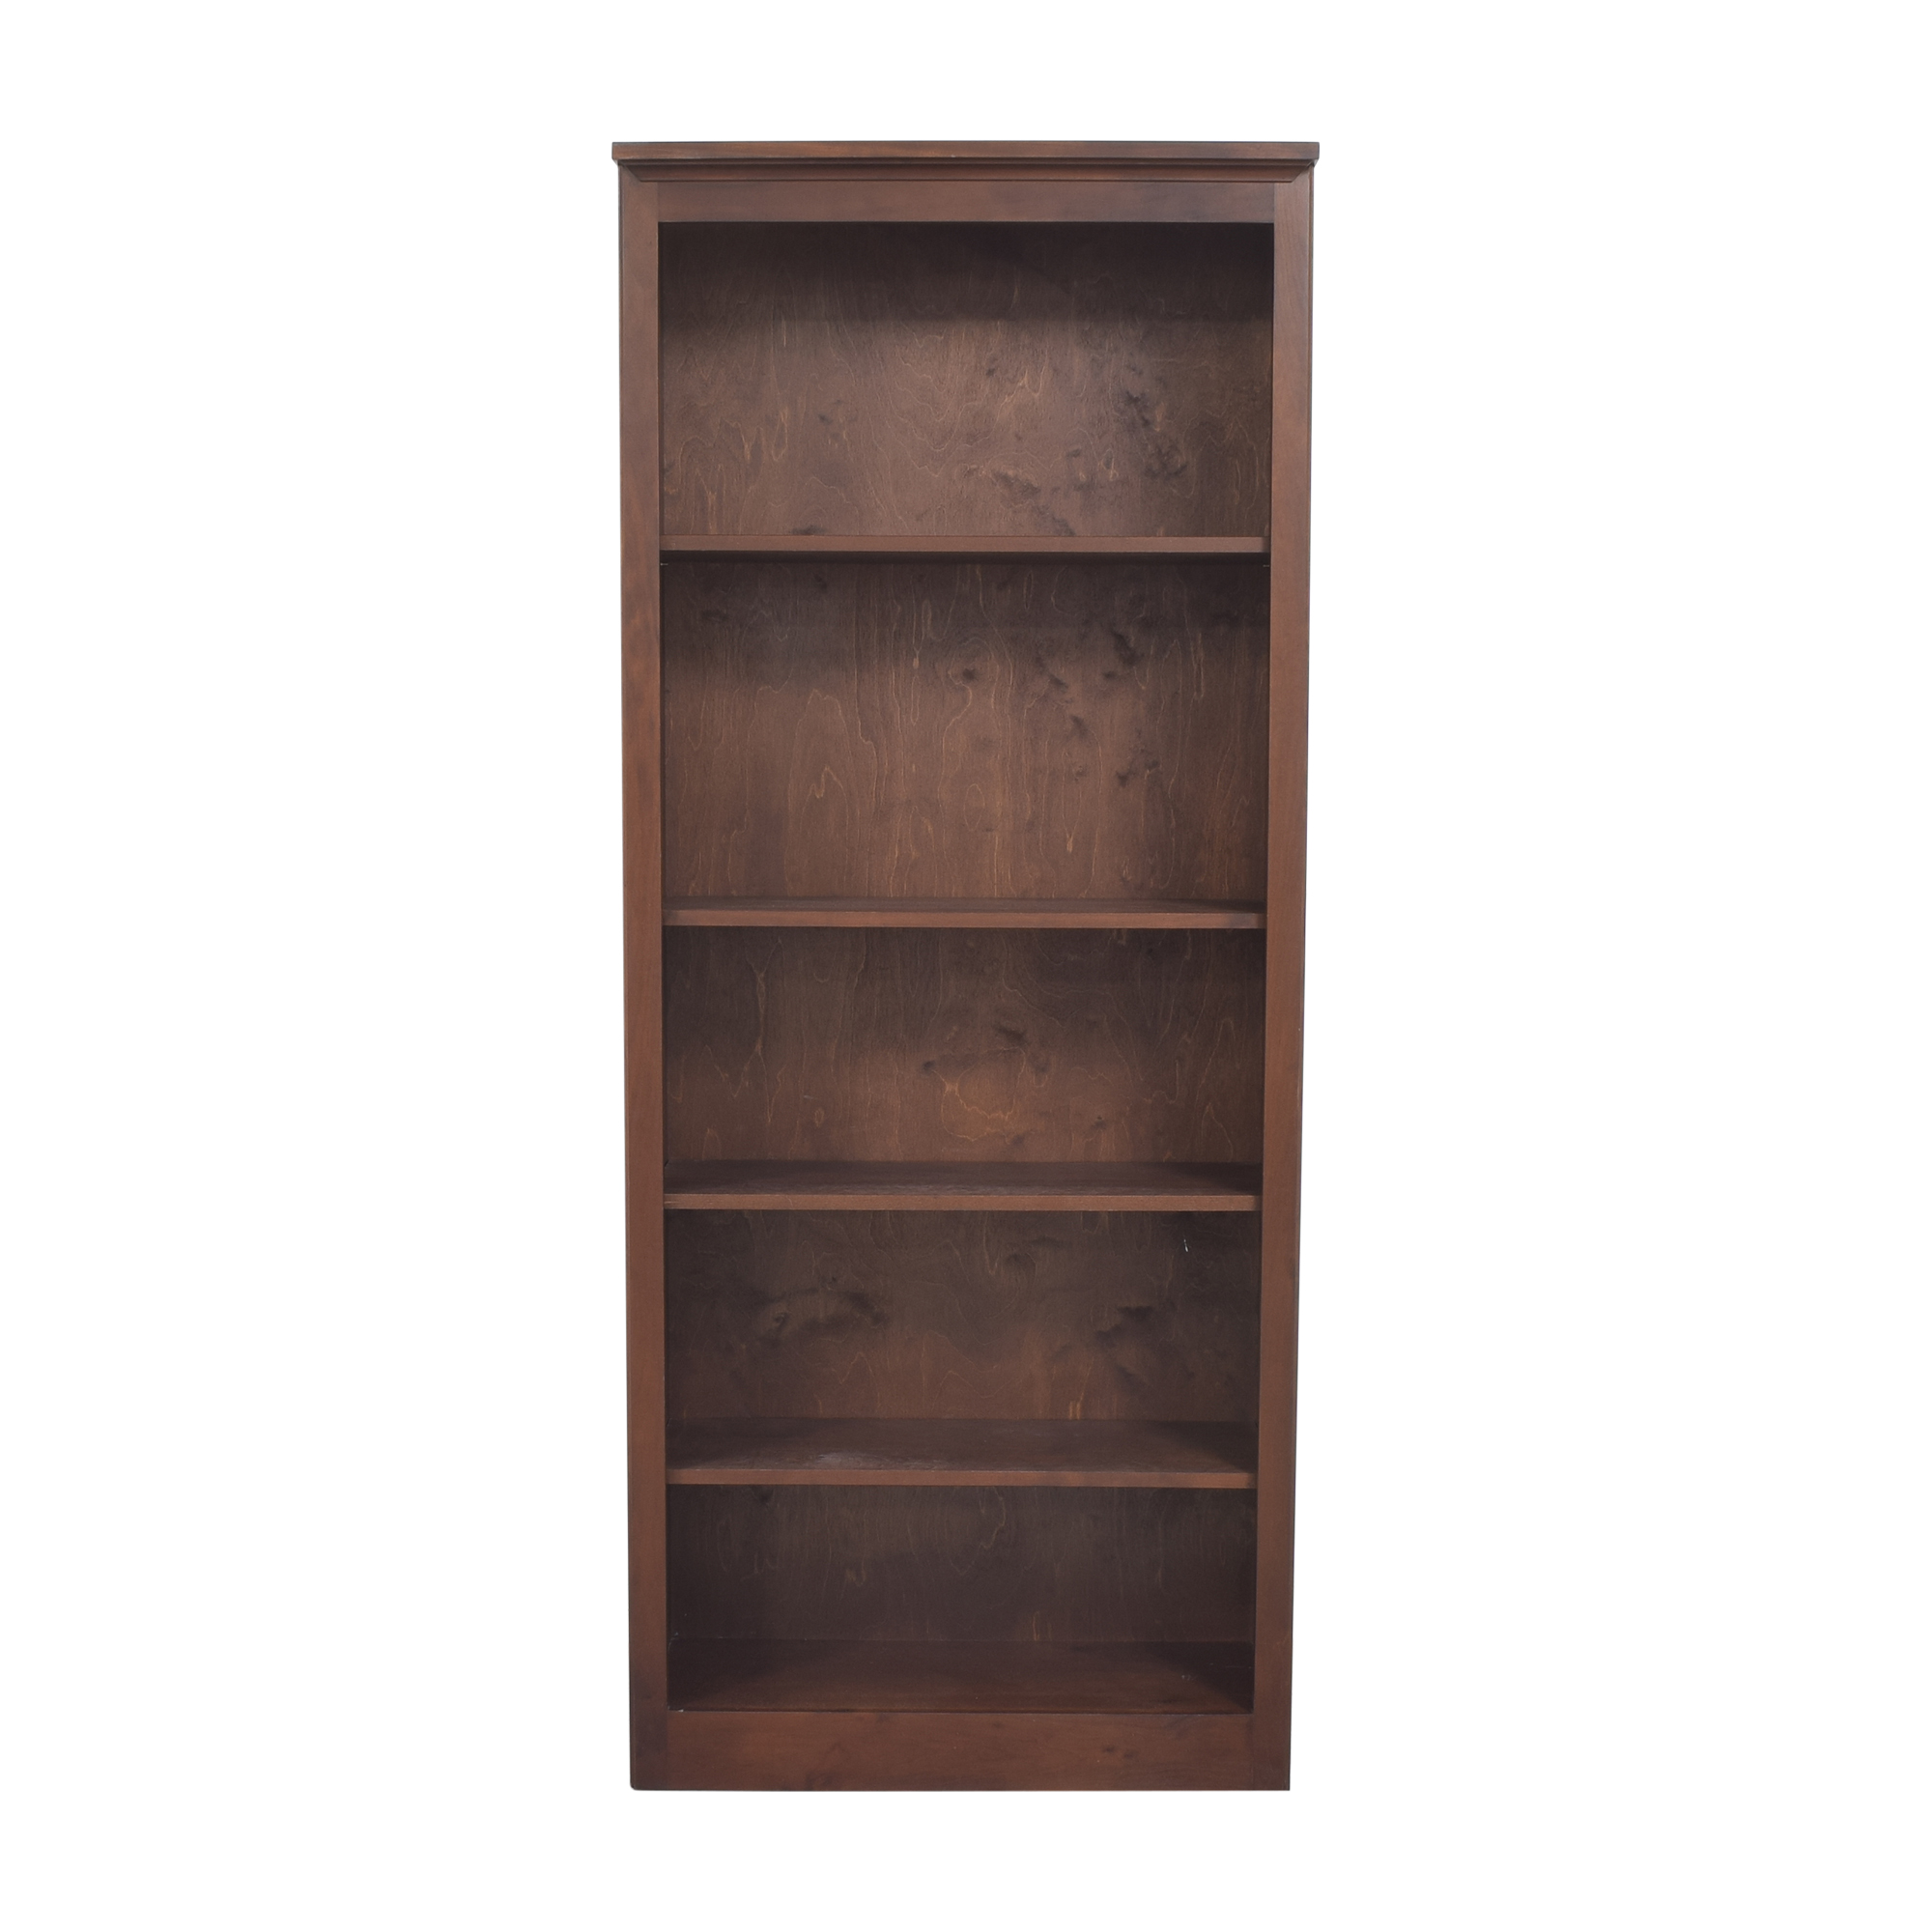 Crate & Barrel Crate & Barrel Tall Bookcase